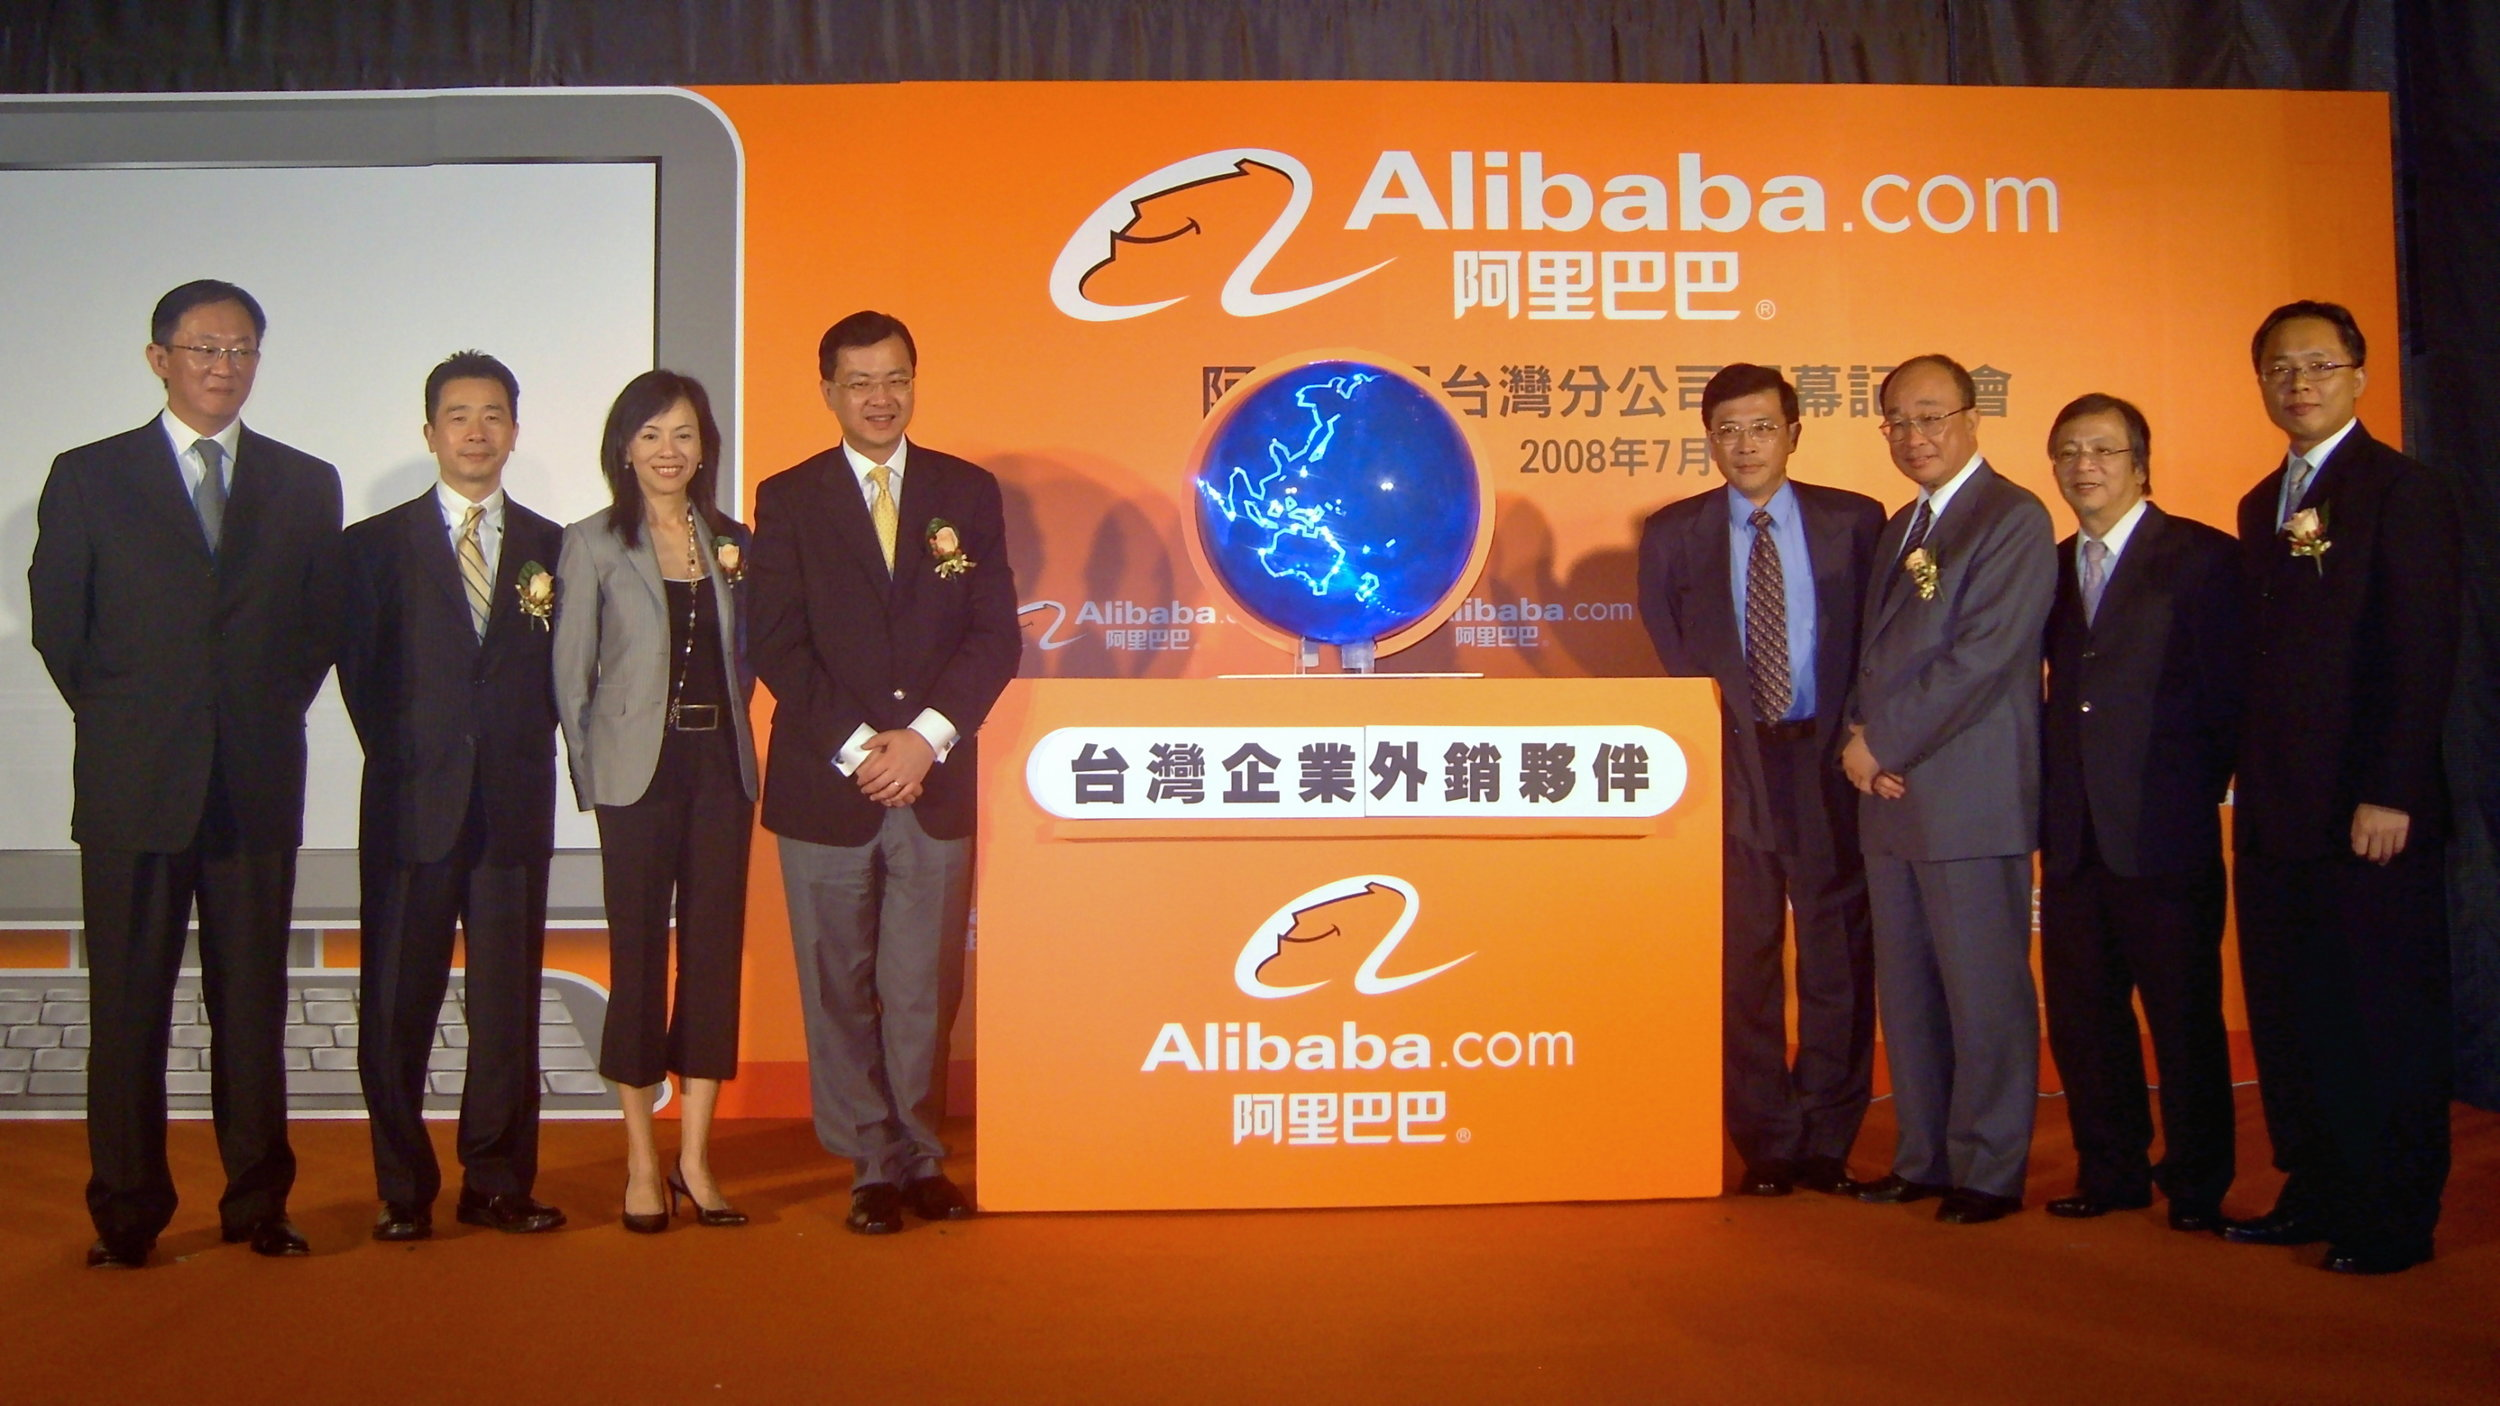 Alibaba is one of the Chinese companies that anti-996 activists have criticized. (Wikimedia Commons)